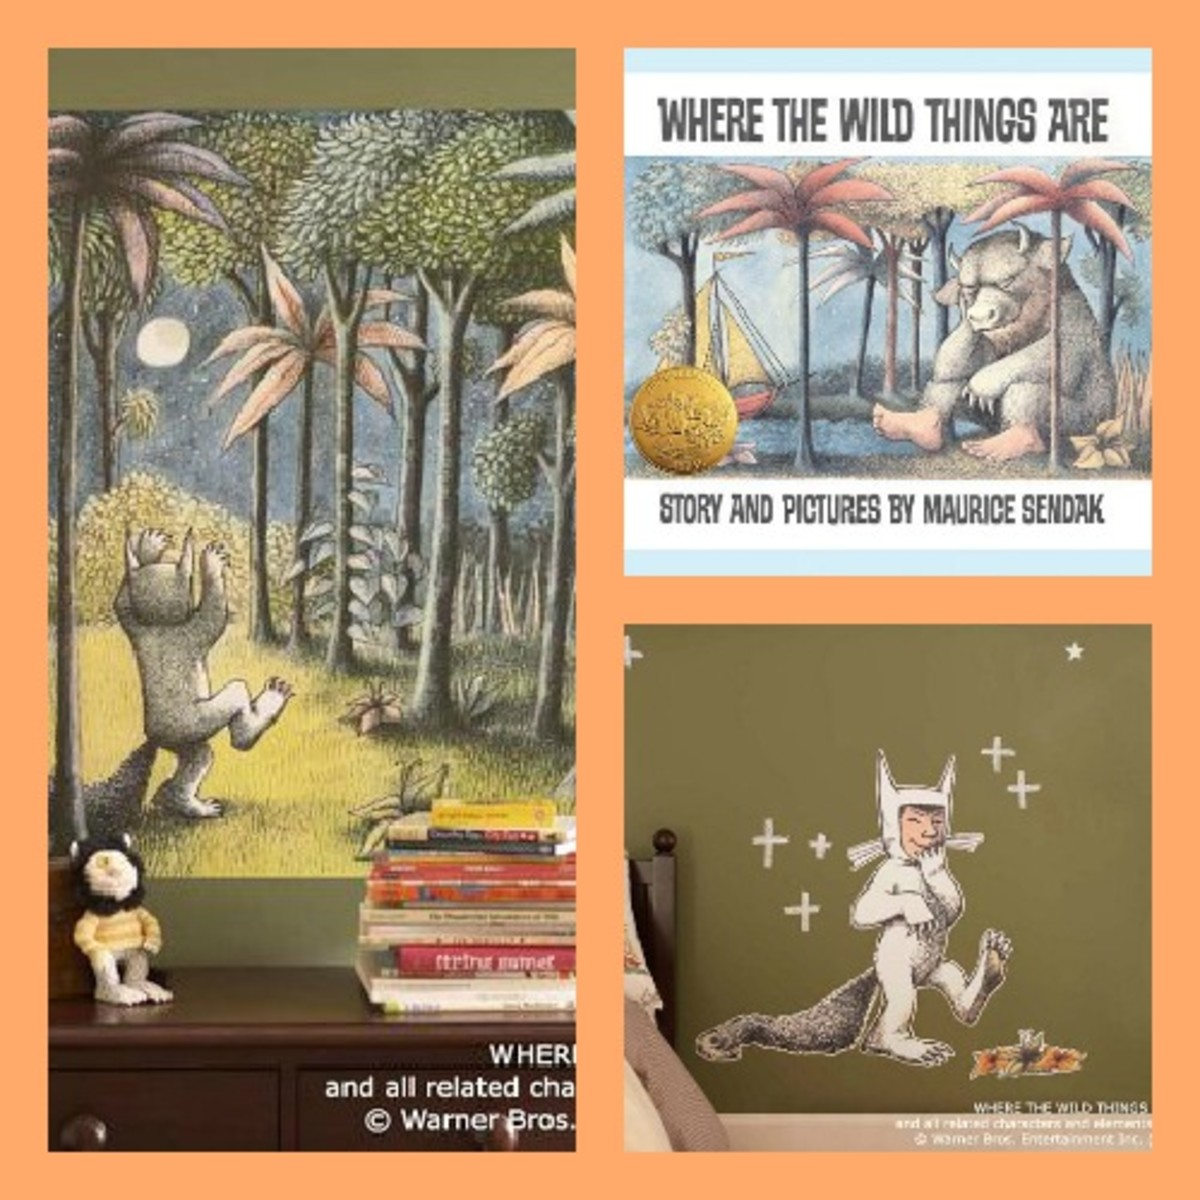 where_wild_things_are